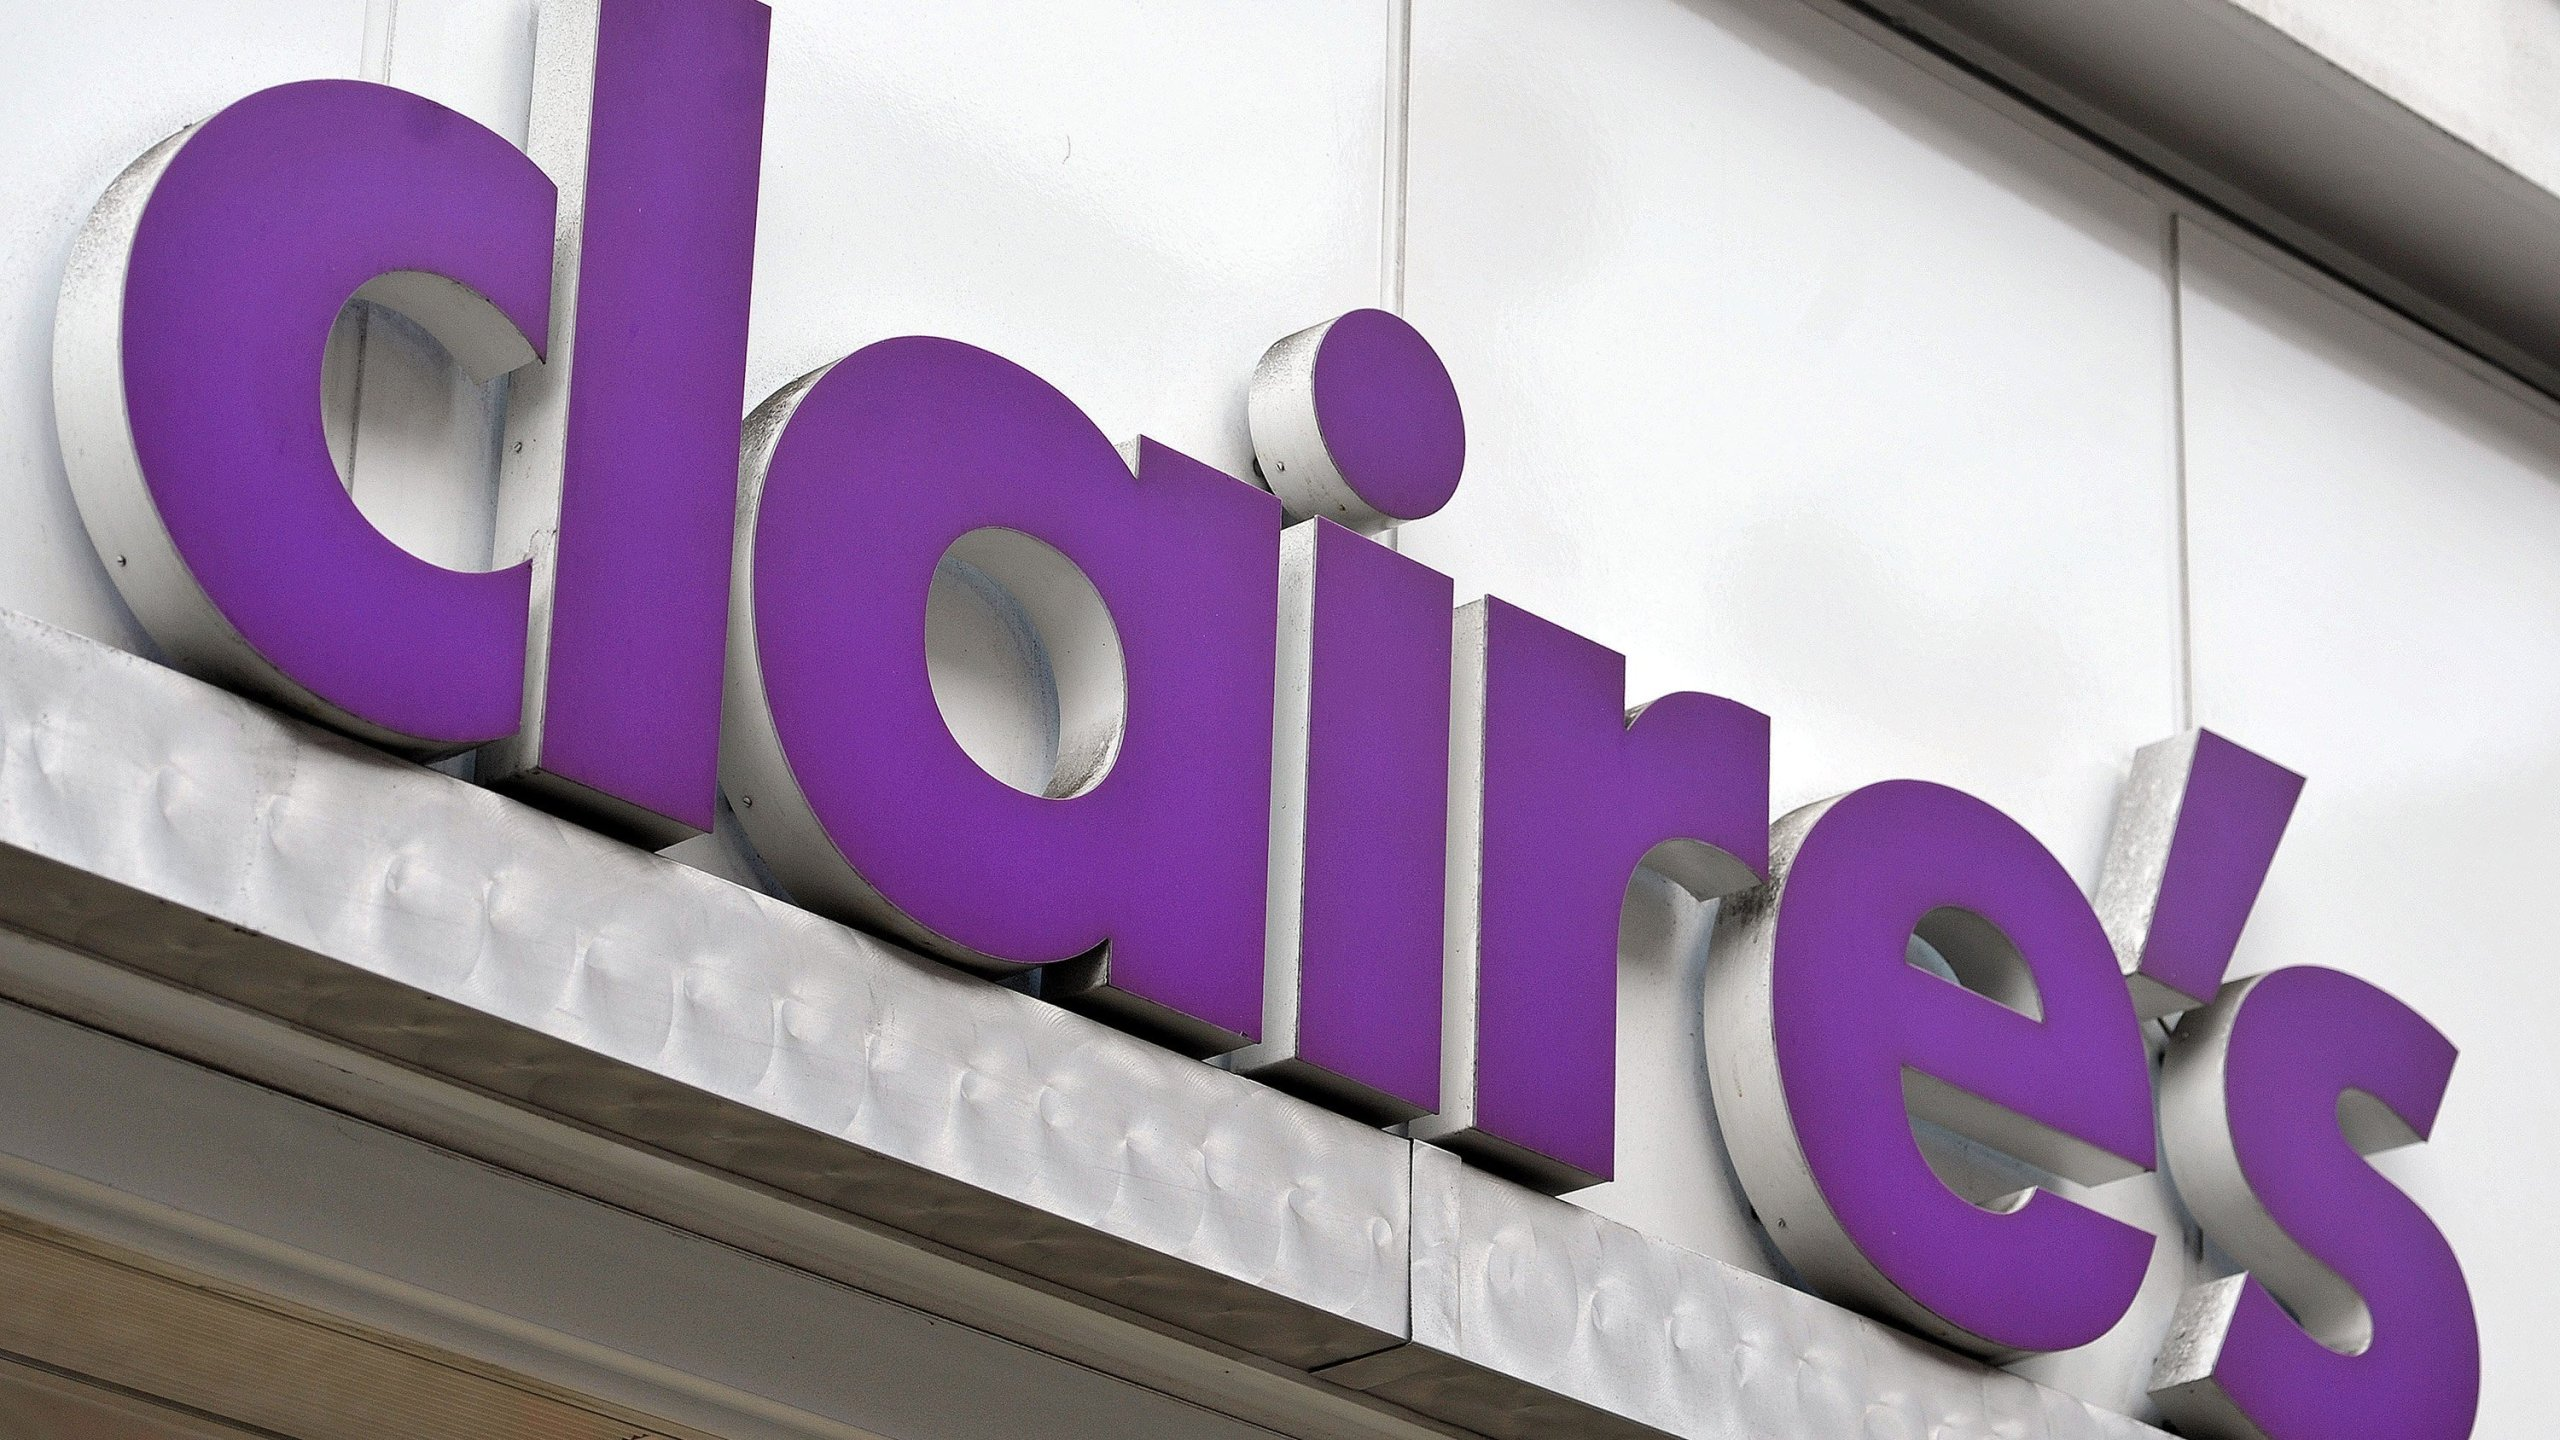 A sign over a Claire's store is seen in an undated photo. (Credit: CNN)